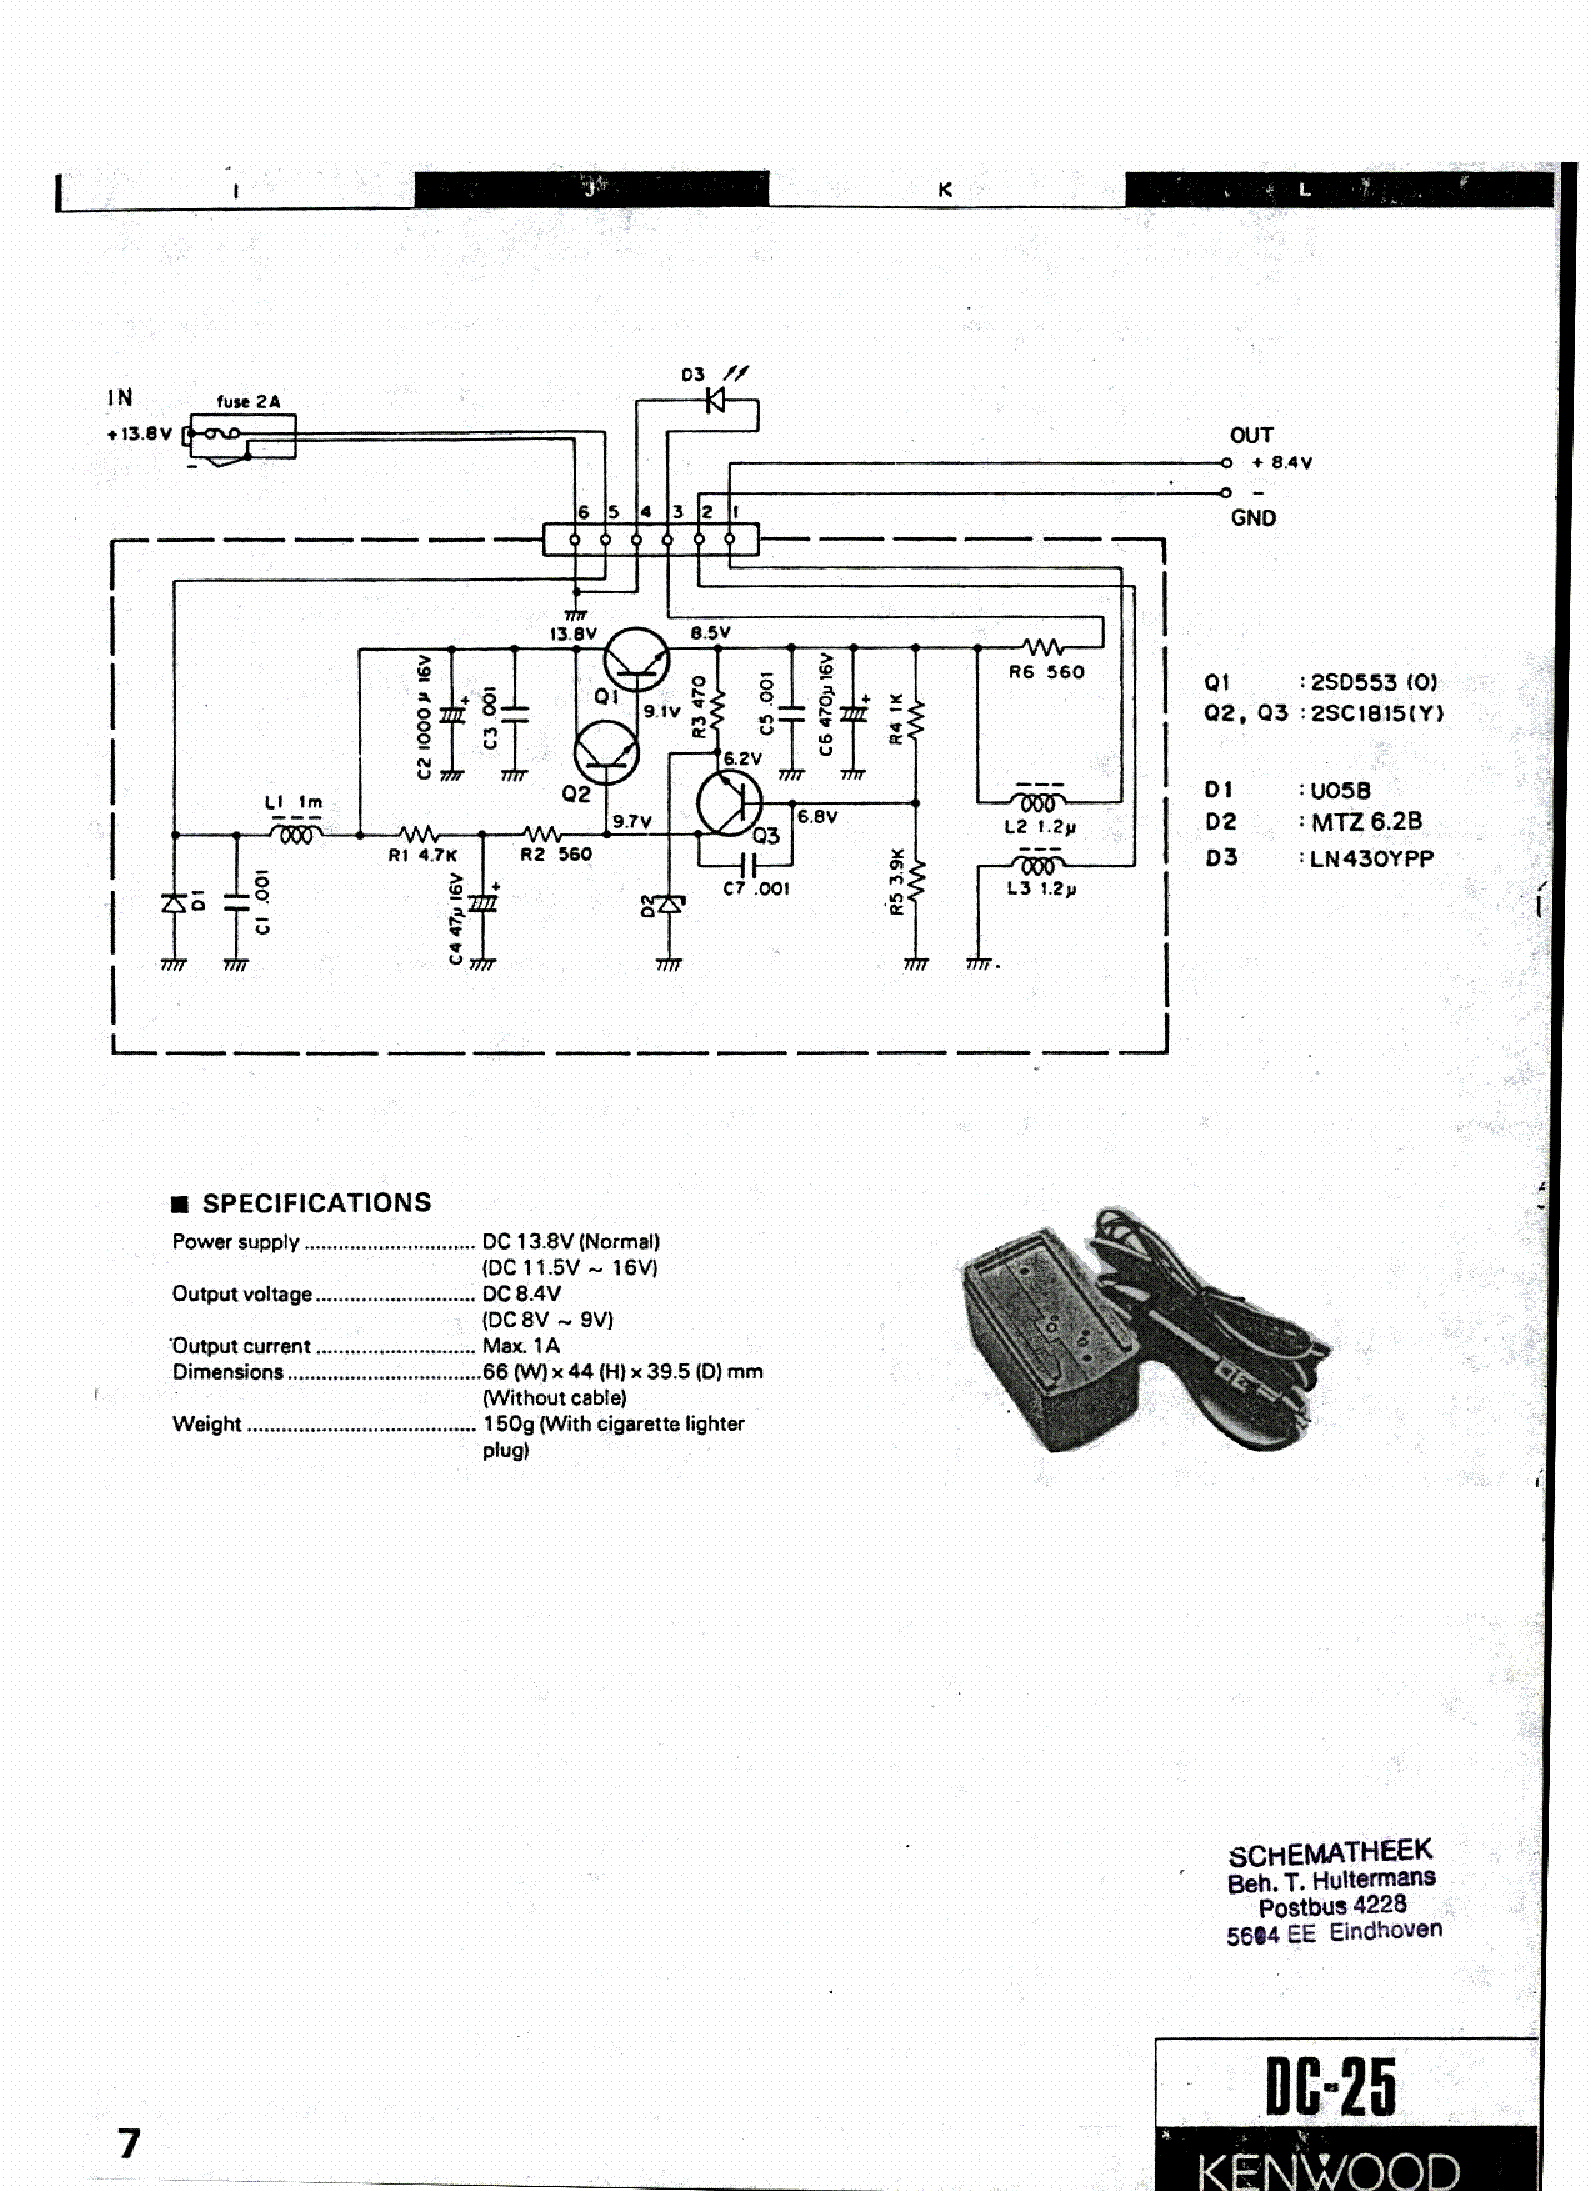 KENWOOD DC-25 POWER-SUPPLY SCH service manual (1st page)